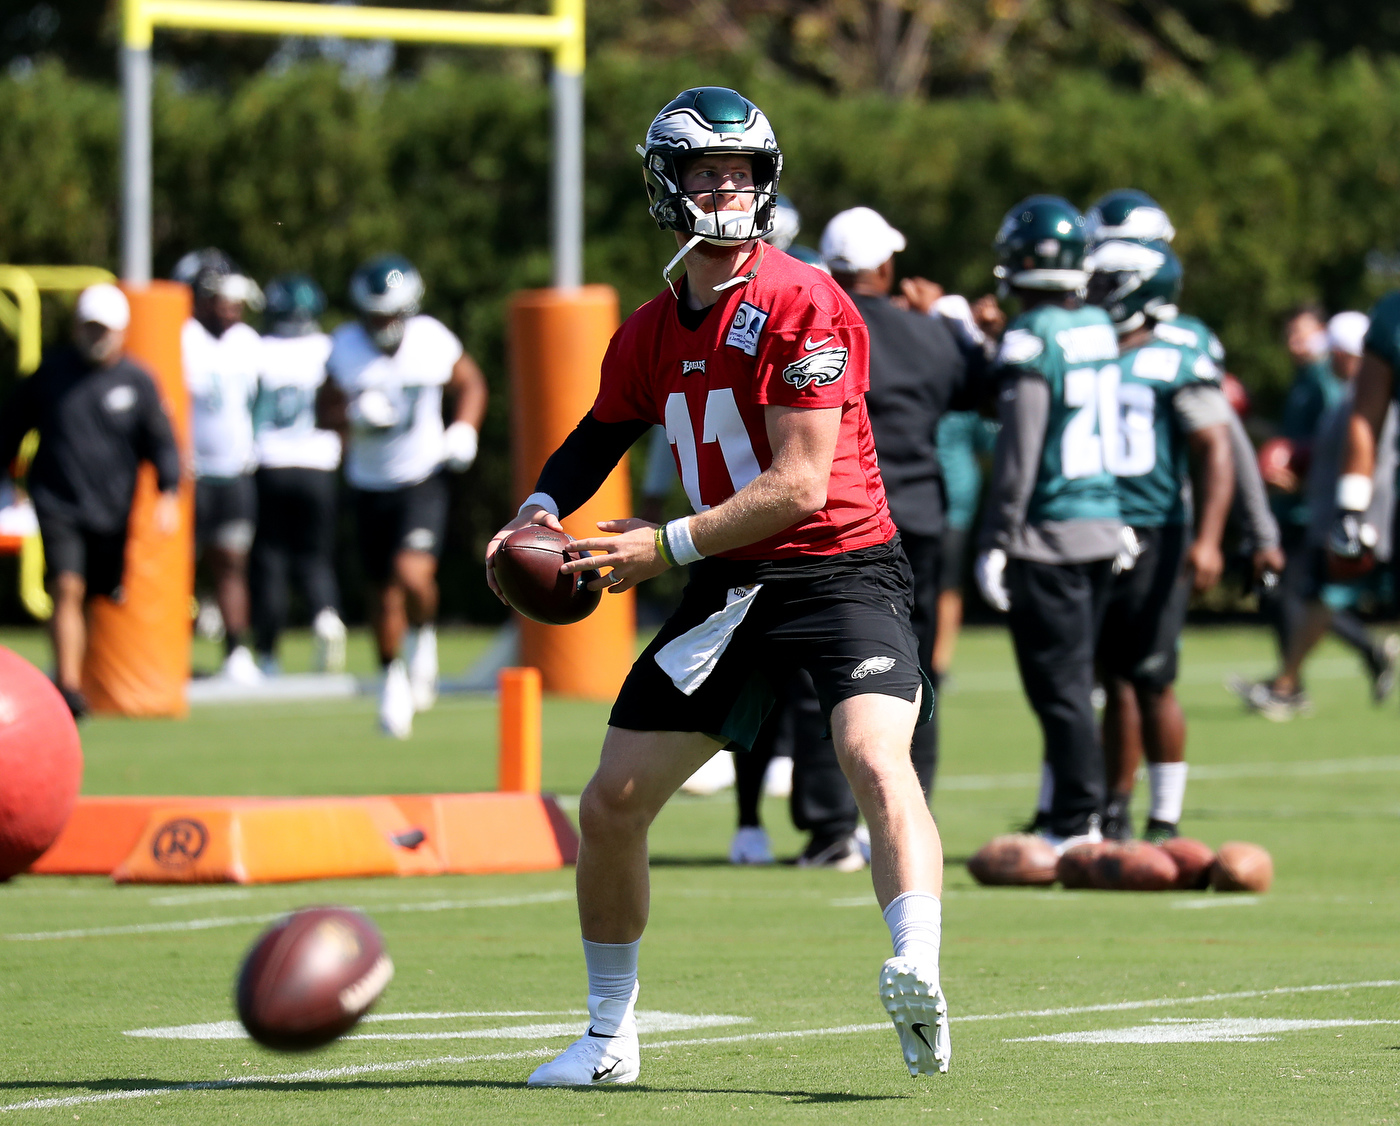 Eagles Week 3 injury report: 4 players ruled out vs. Lions | Alshon Jeffery, Dallas Goedert listed as questionable